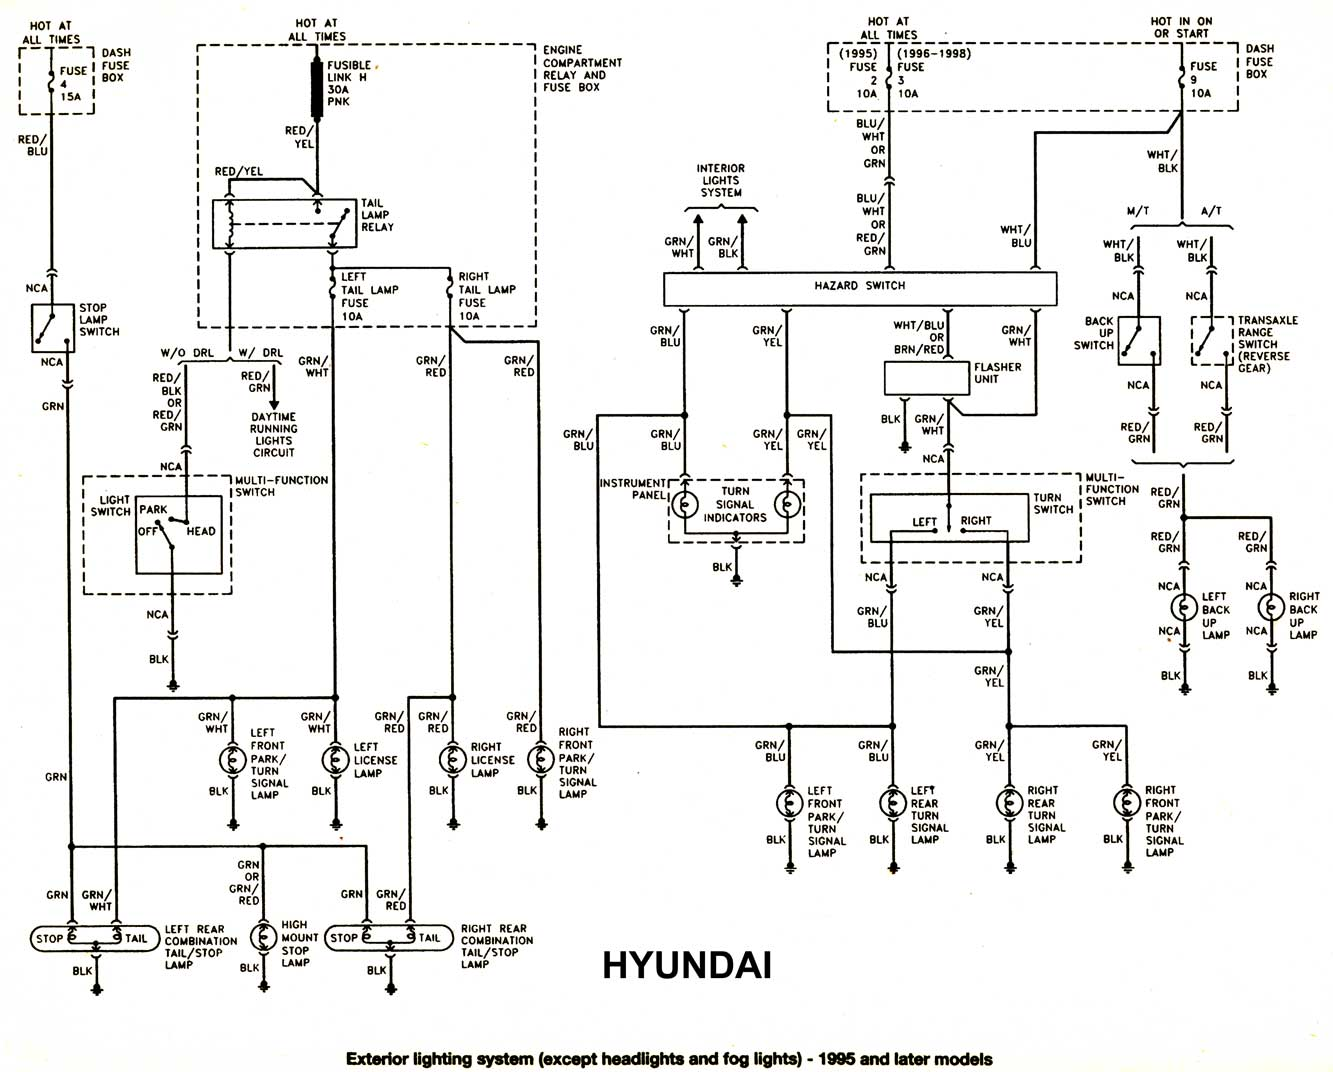 Hyunelect on 2003 ford focus engine diagram